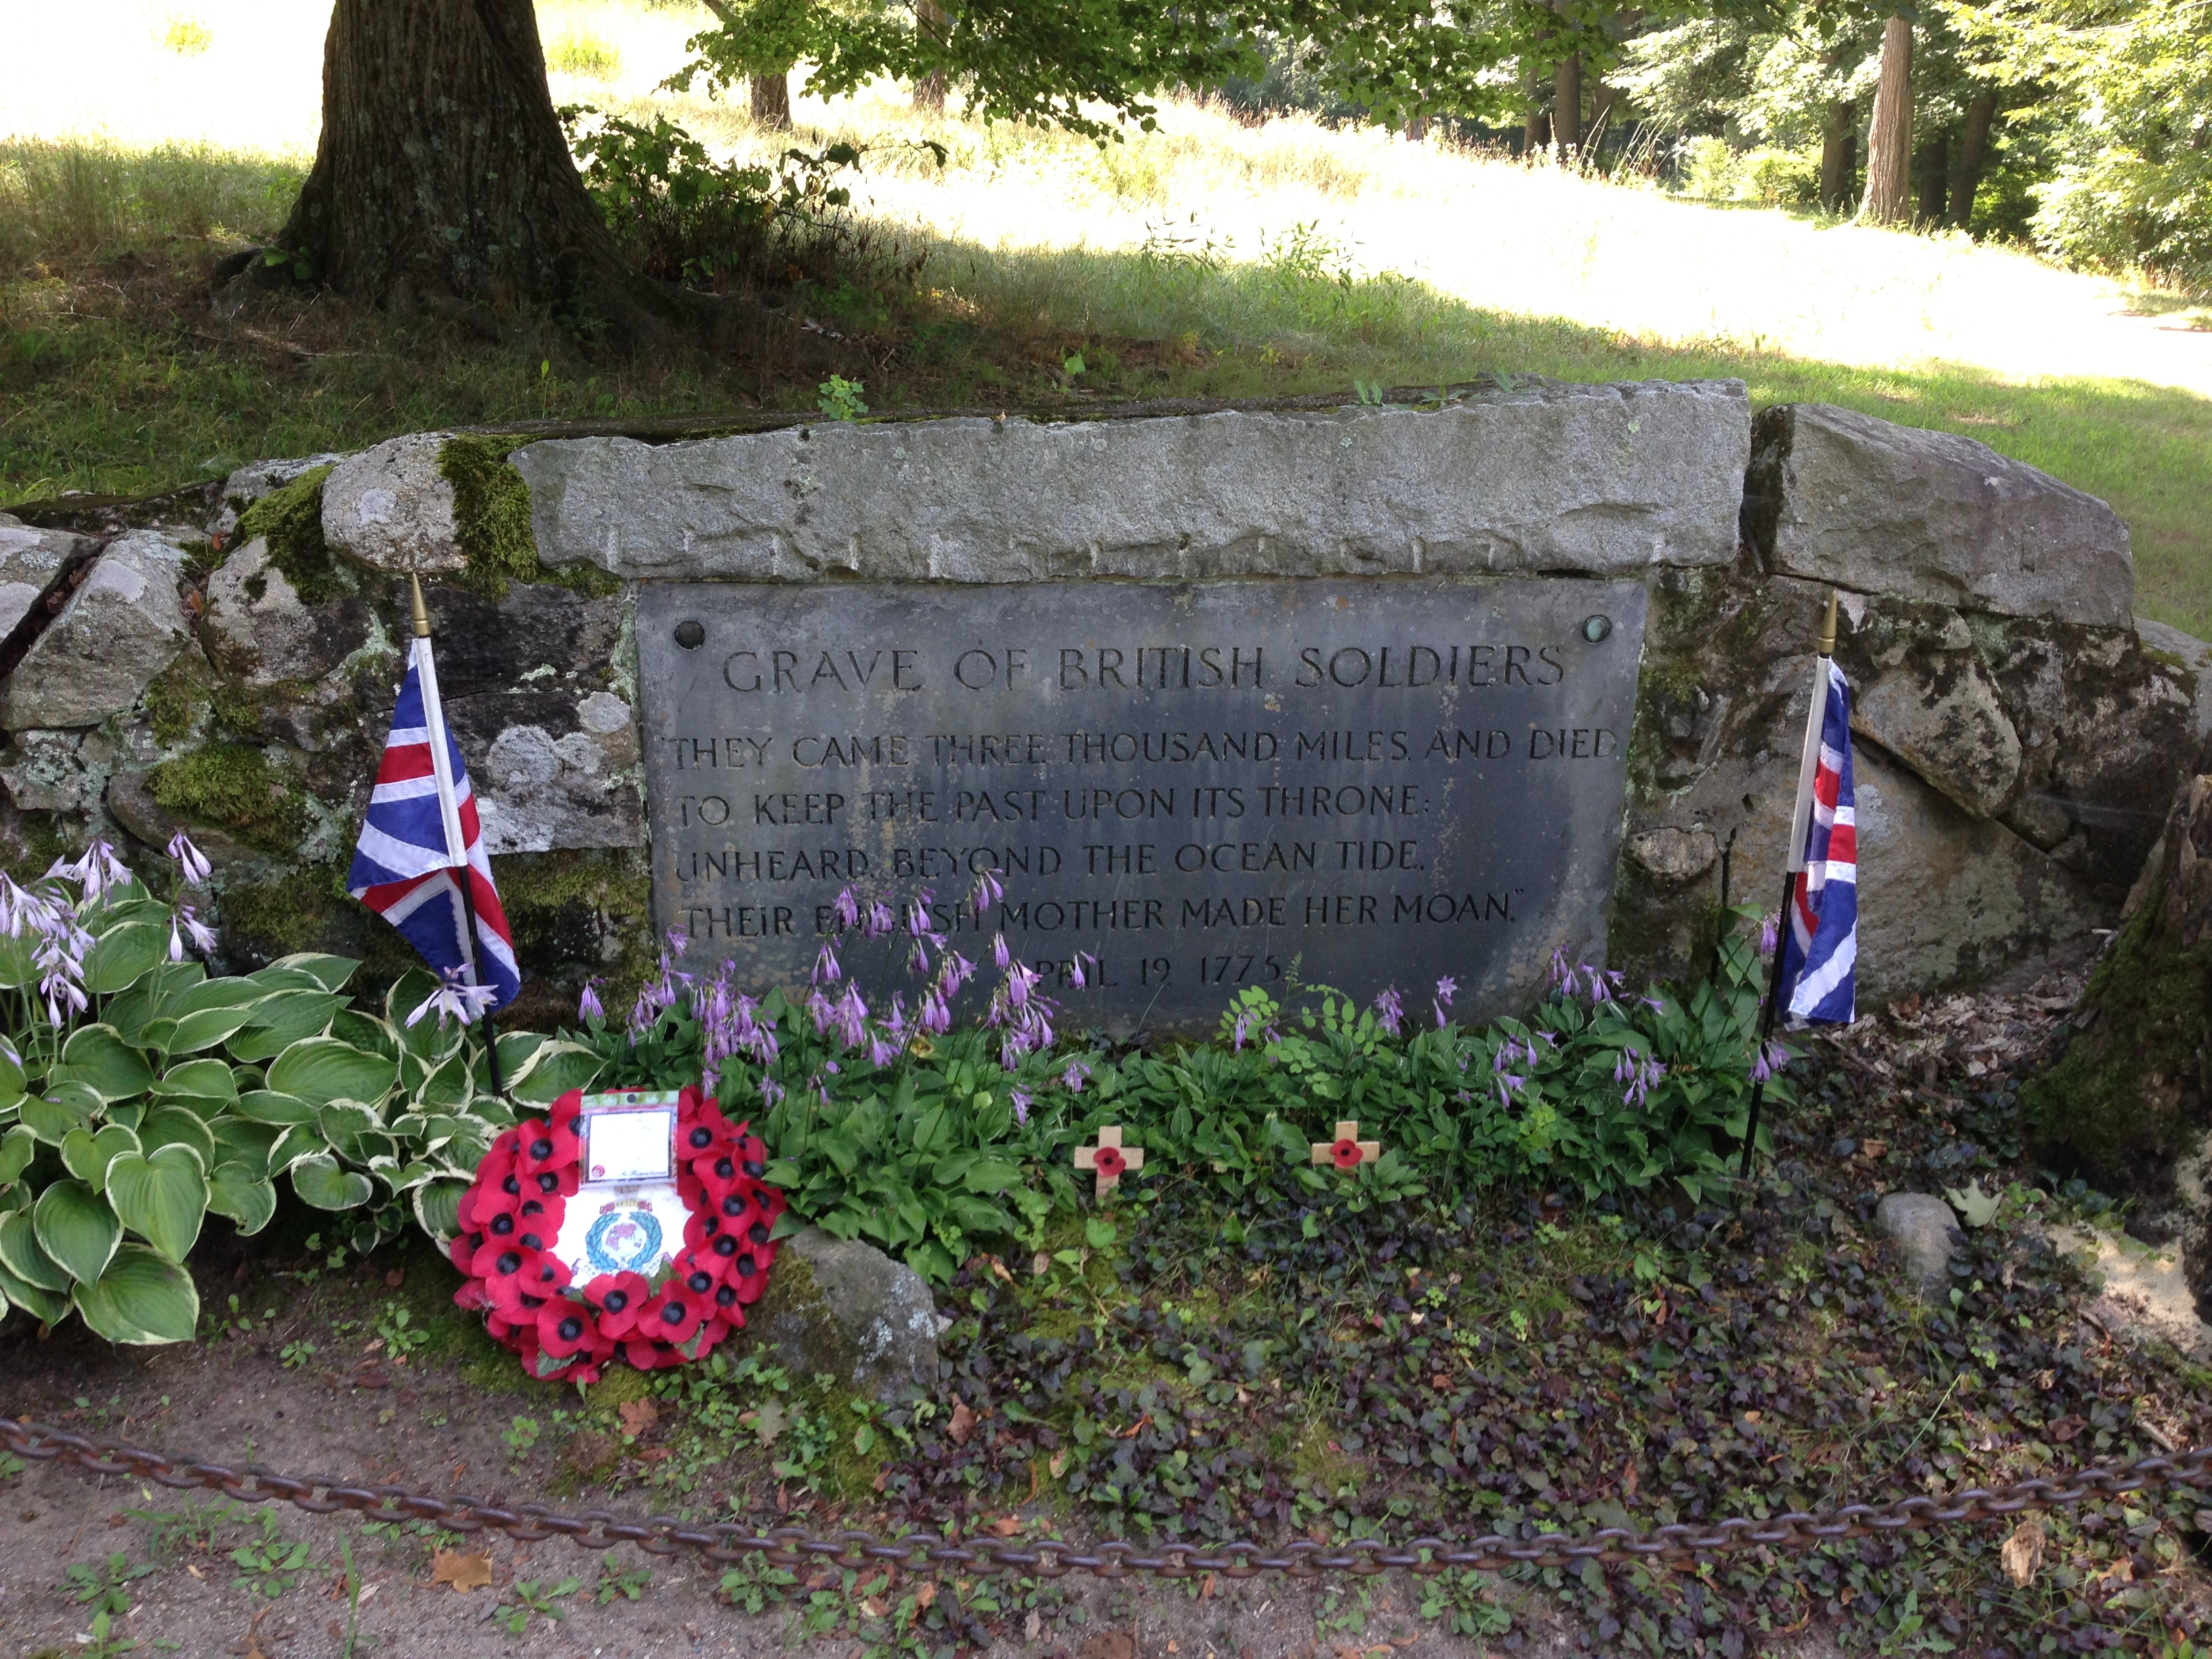 Graves of British Soldiers at Concord